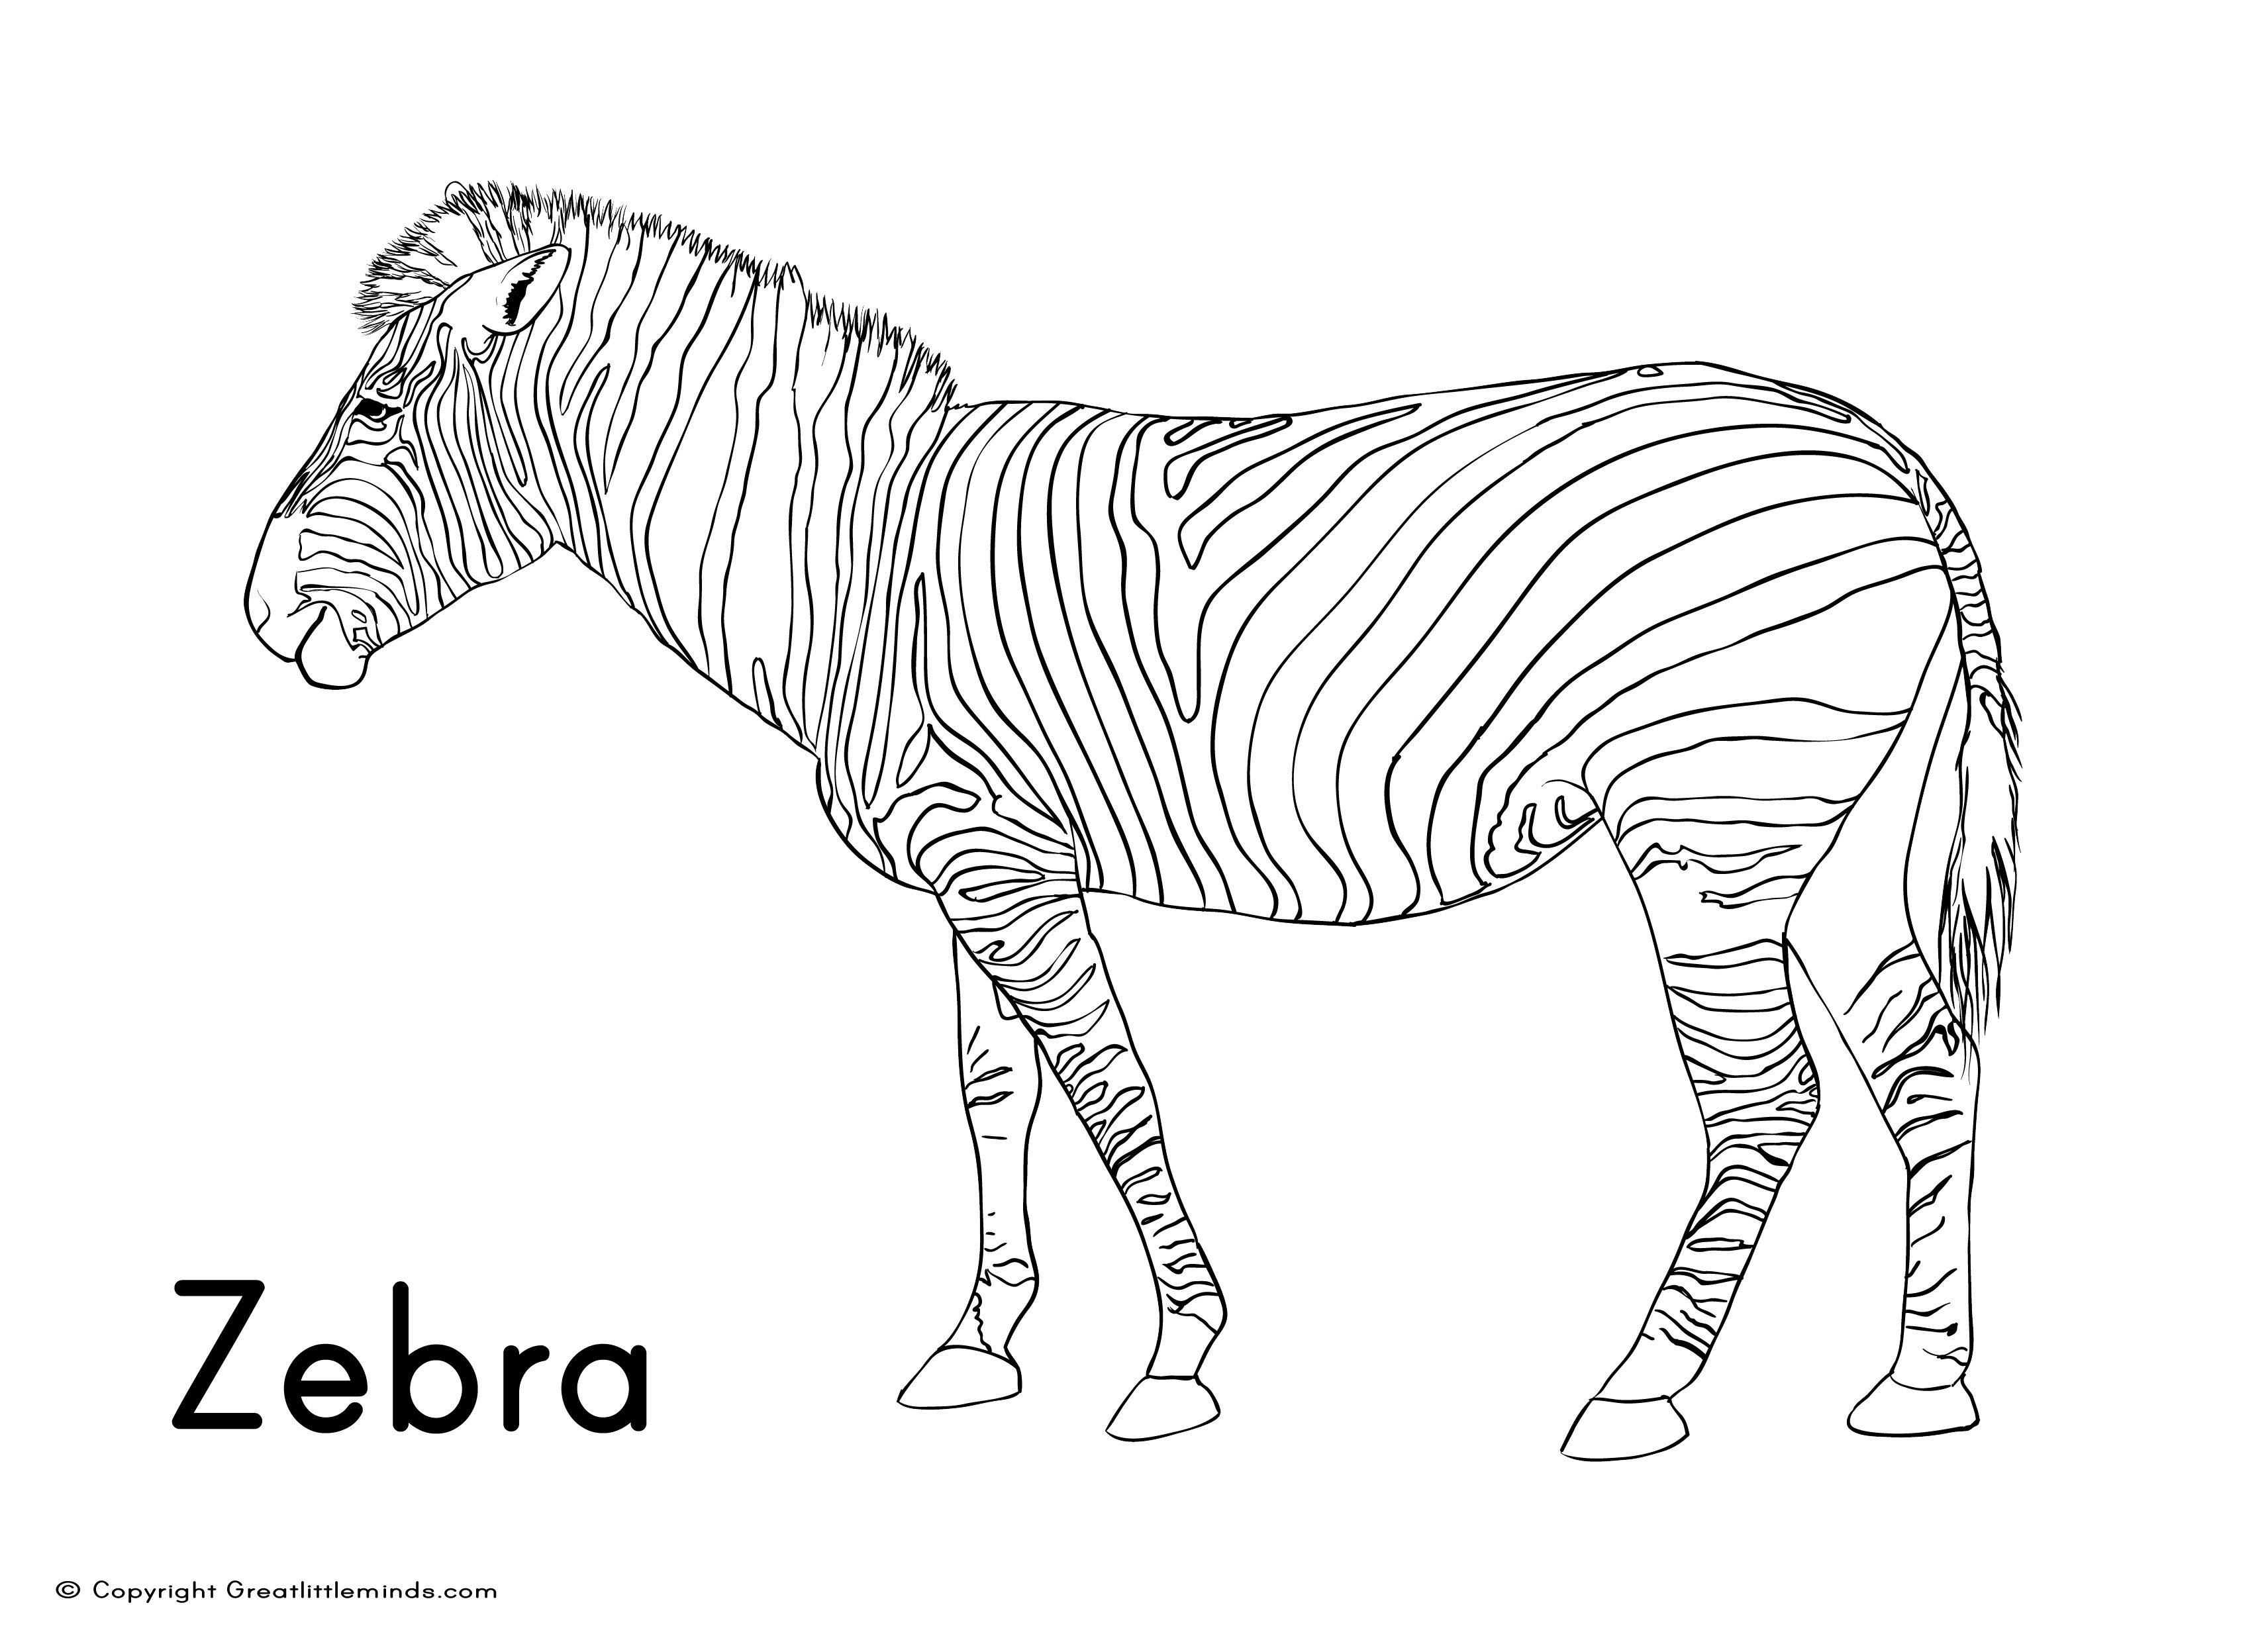 Zebra Coloring Pages Coloring Pages Zebra Colouring Sheet Zootable Free Put Me In The